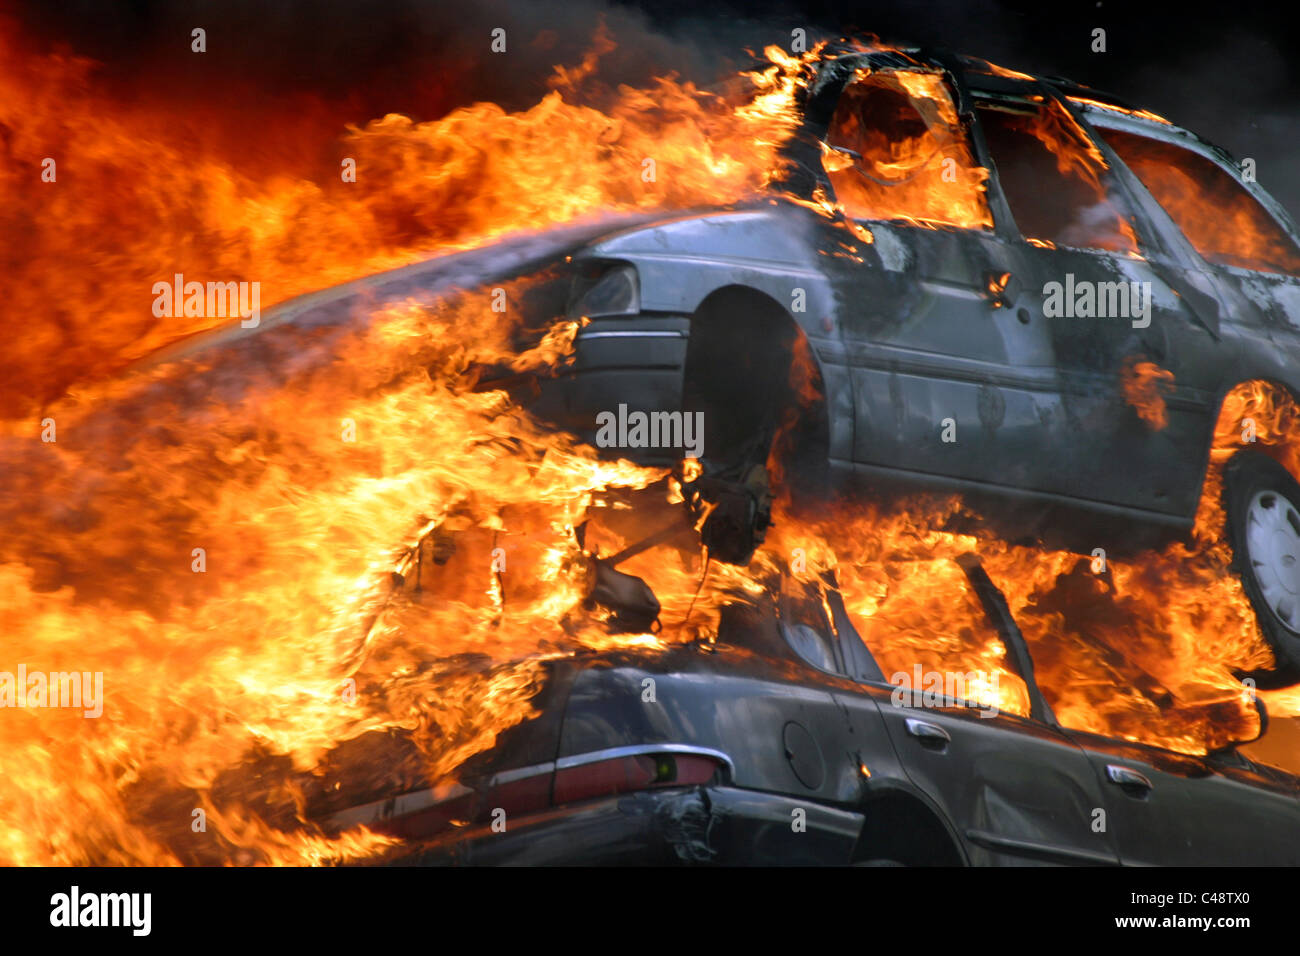 Cars on fire at a blaze in a scrapyard - Stock Image